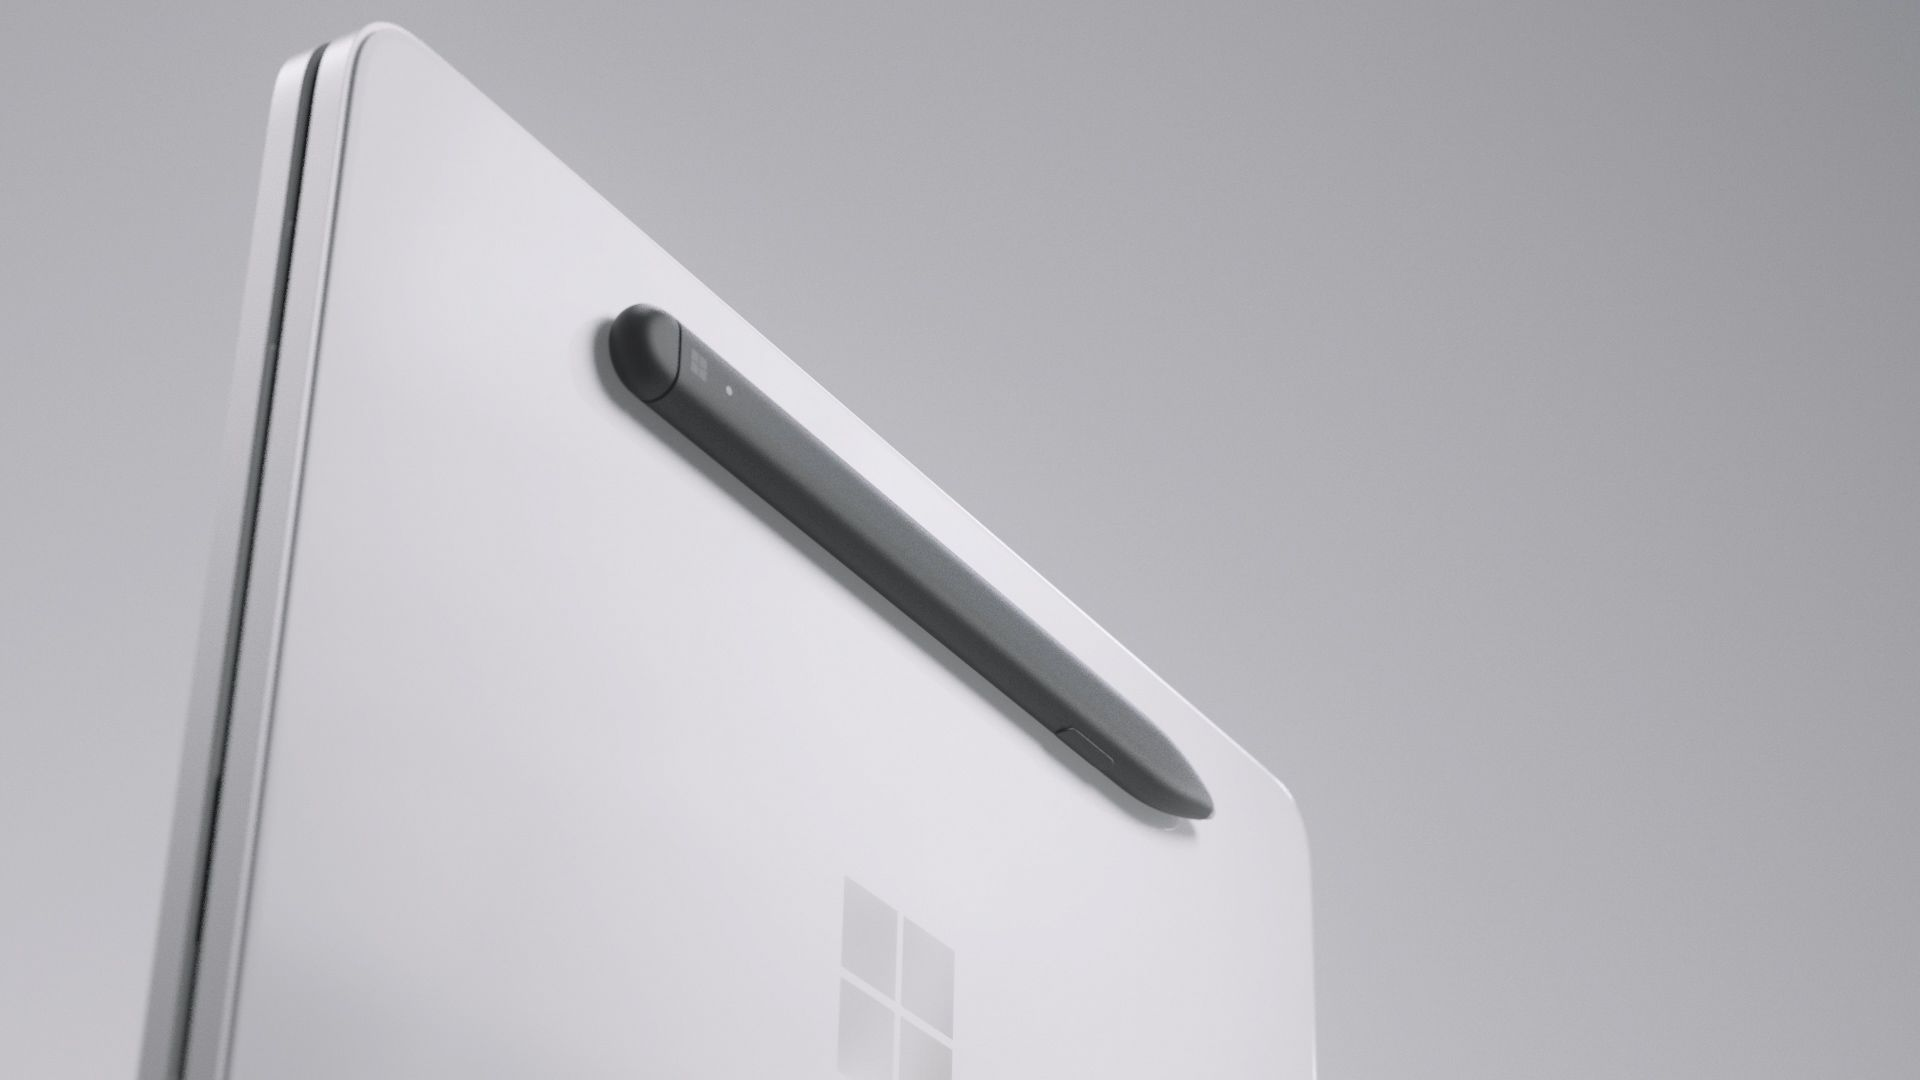 The Surface Slim Pen is magnetically attached to the outside of the Surface Neo.